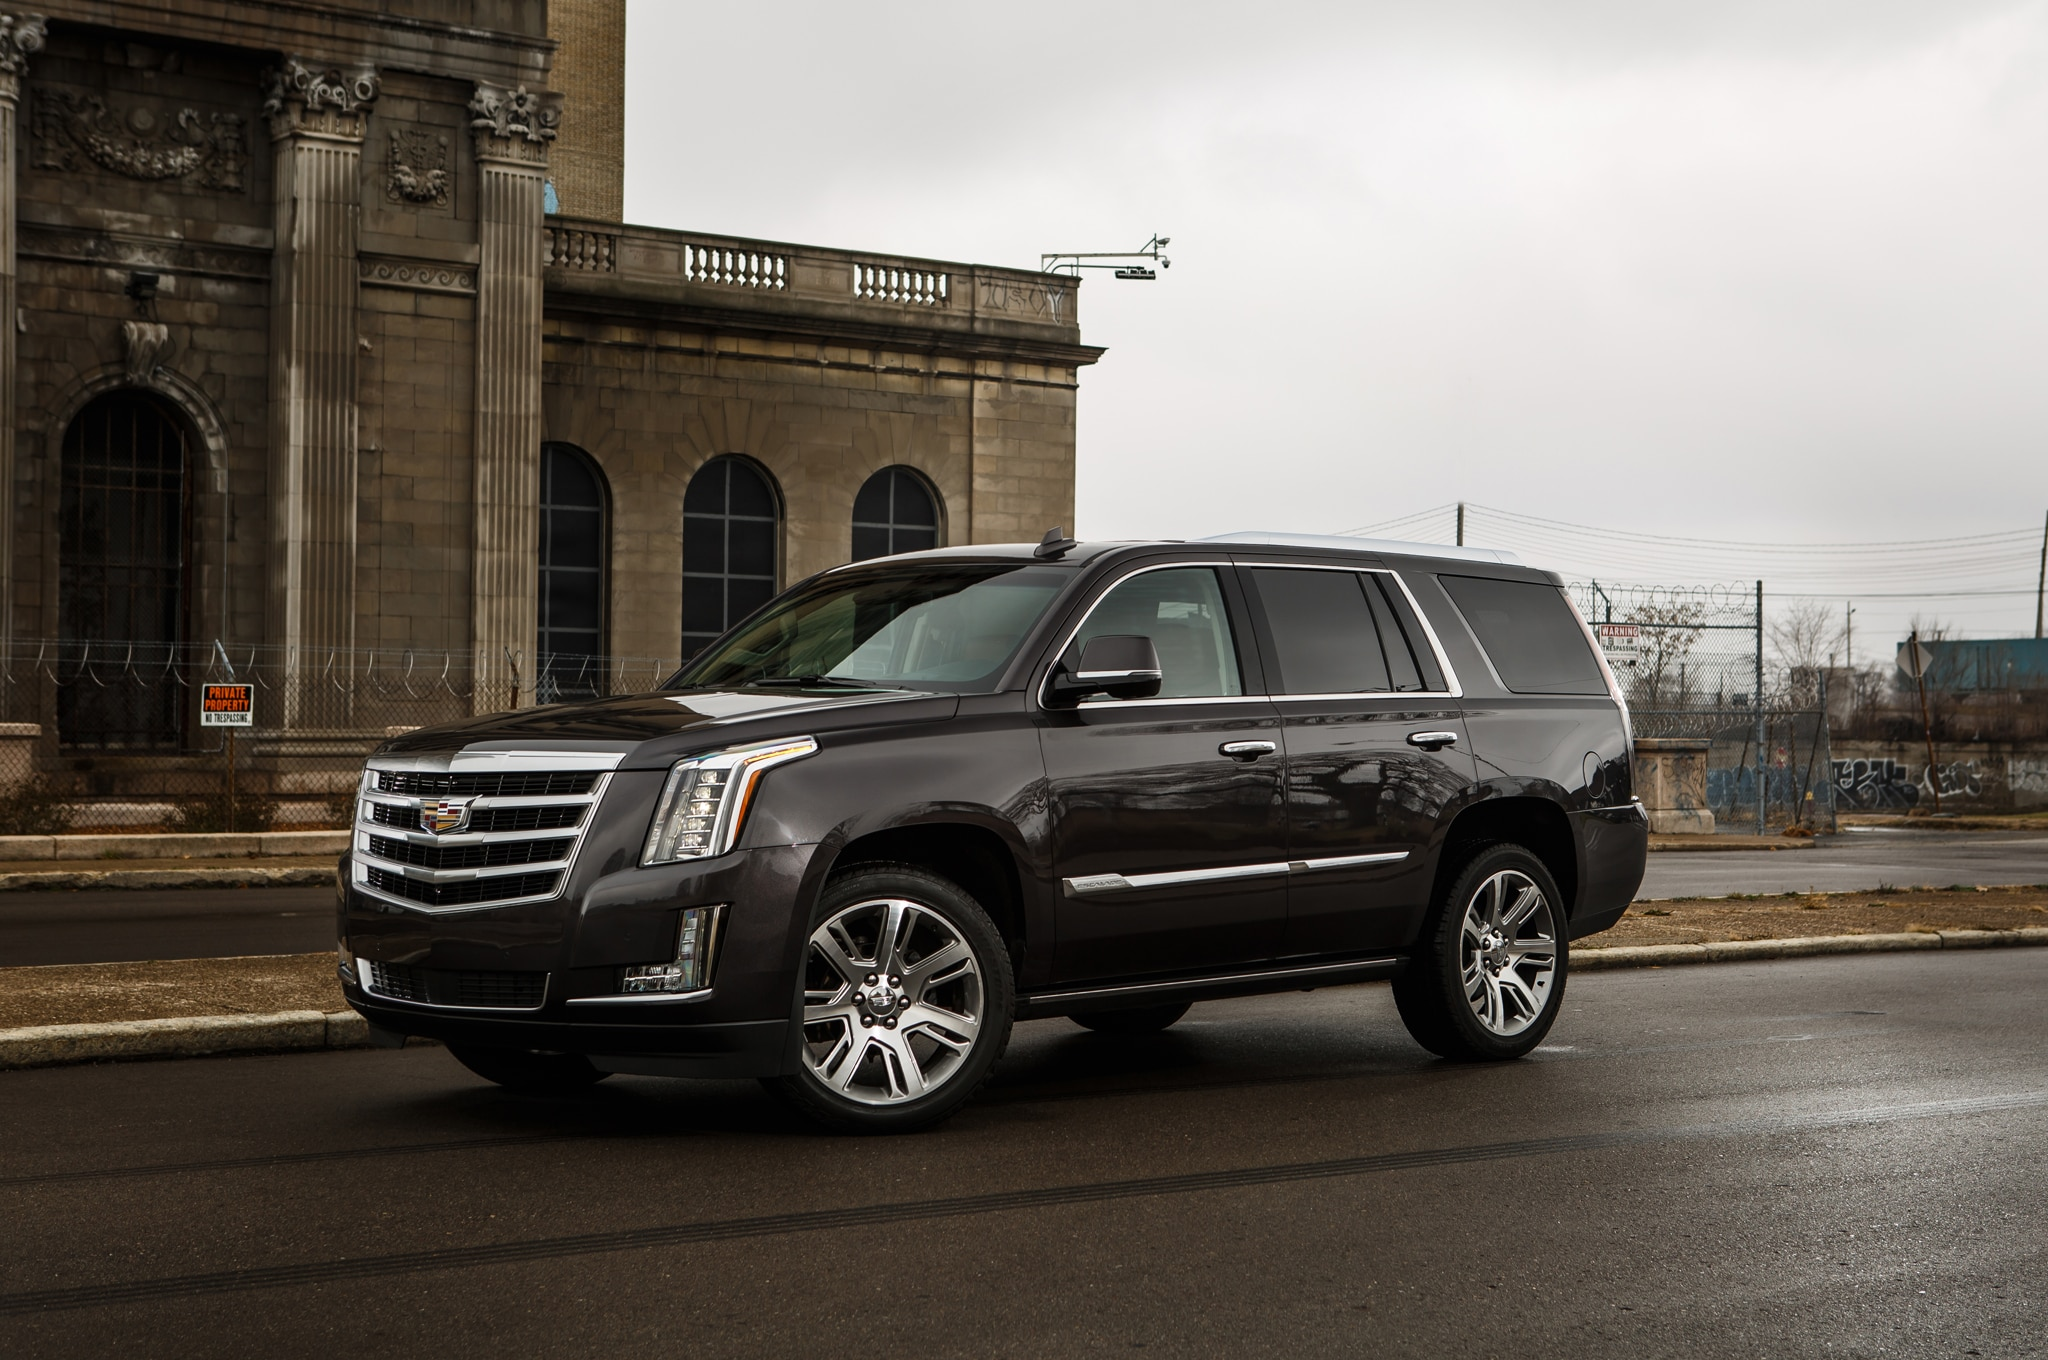 2015 cadillac escalade vs 2015 lincoln navigator comparison. Black Bedroom Furniture Sets. Home Design Ideas